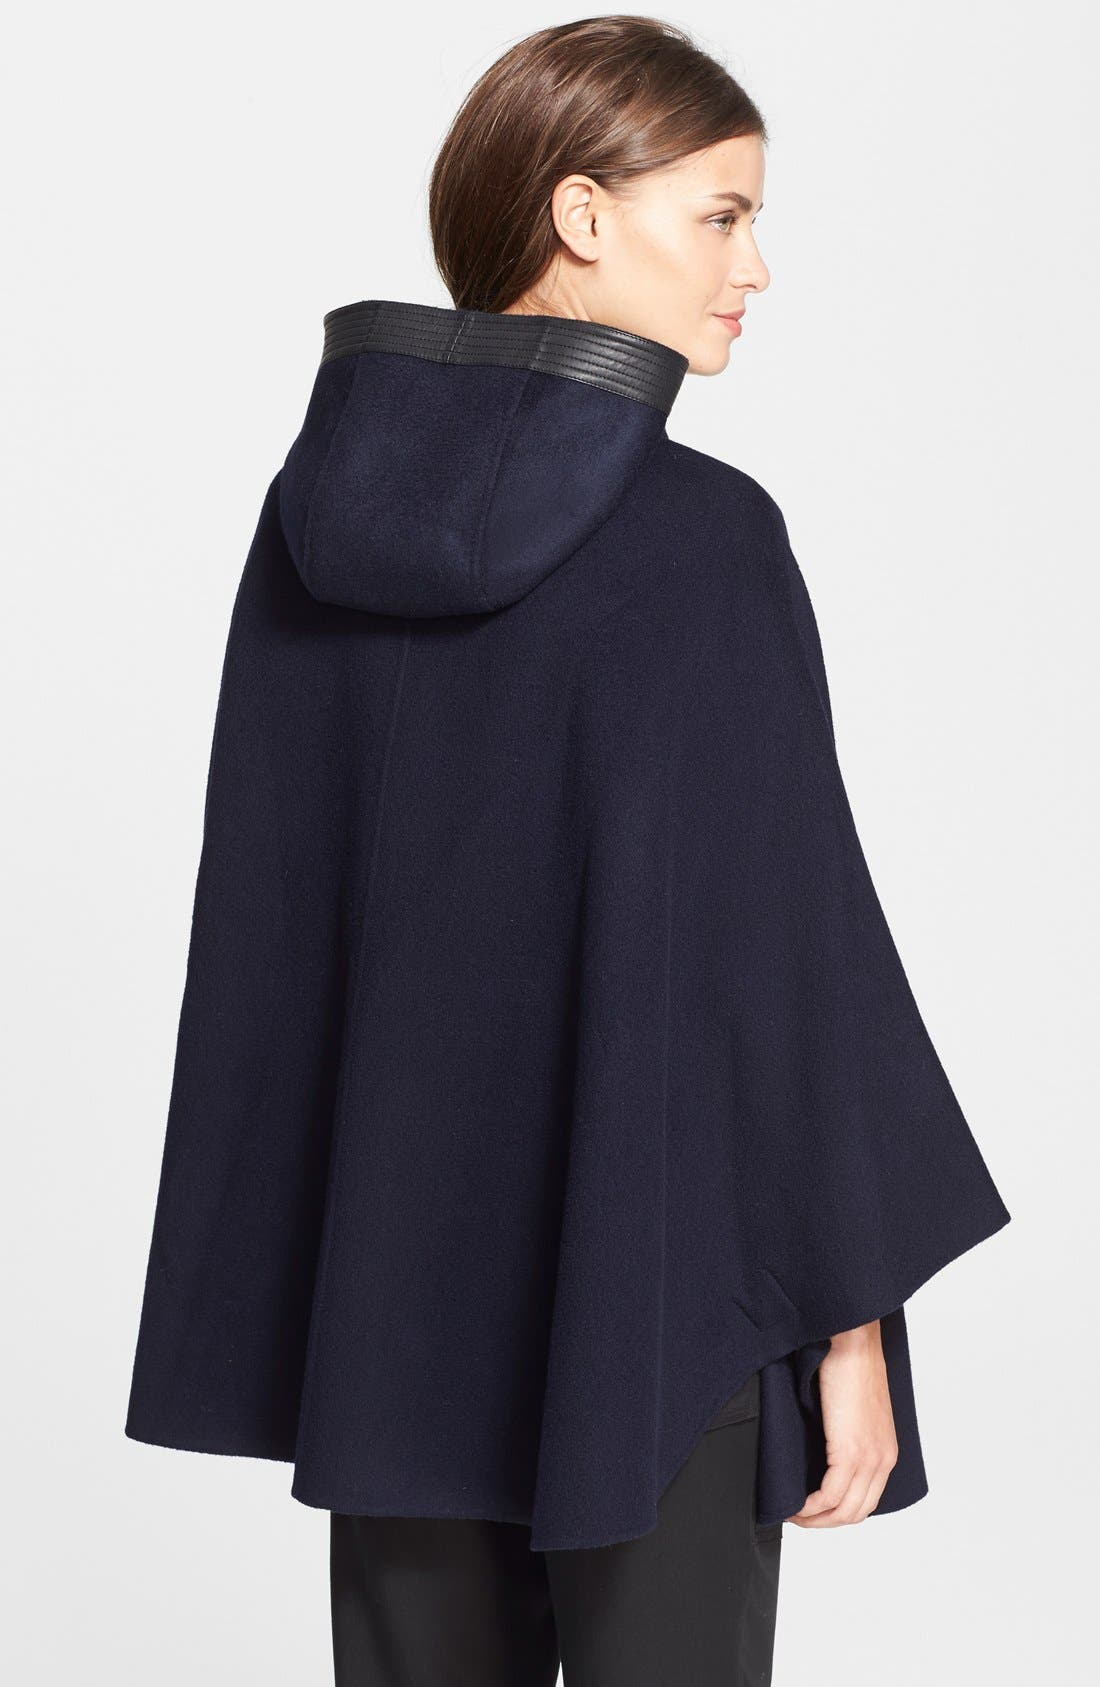 Hooded Wool Blend Cape with Leather Trim,                             Alternate thumbnail 2, color,                             470